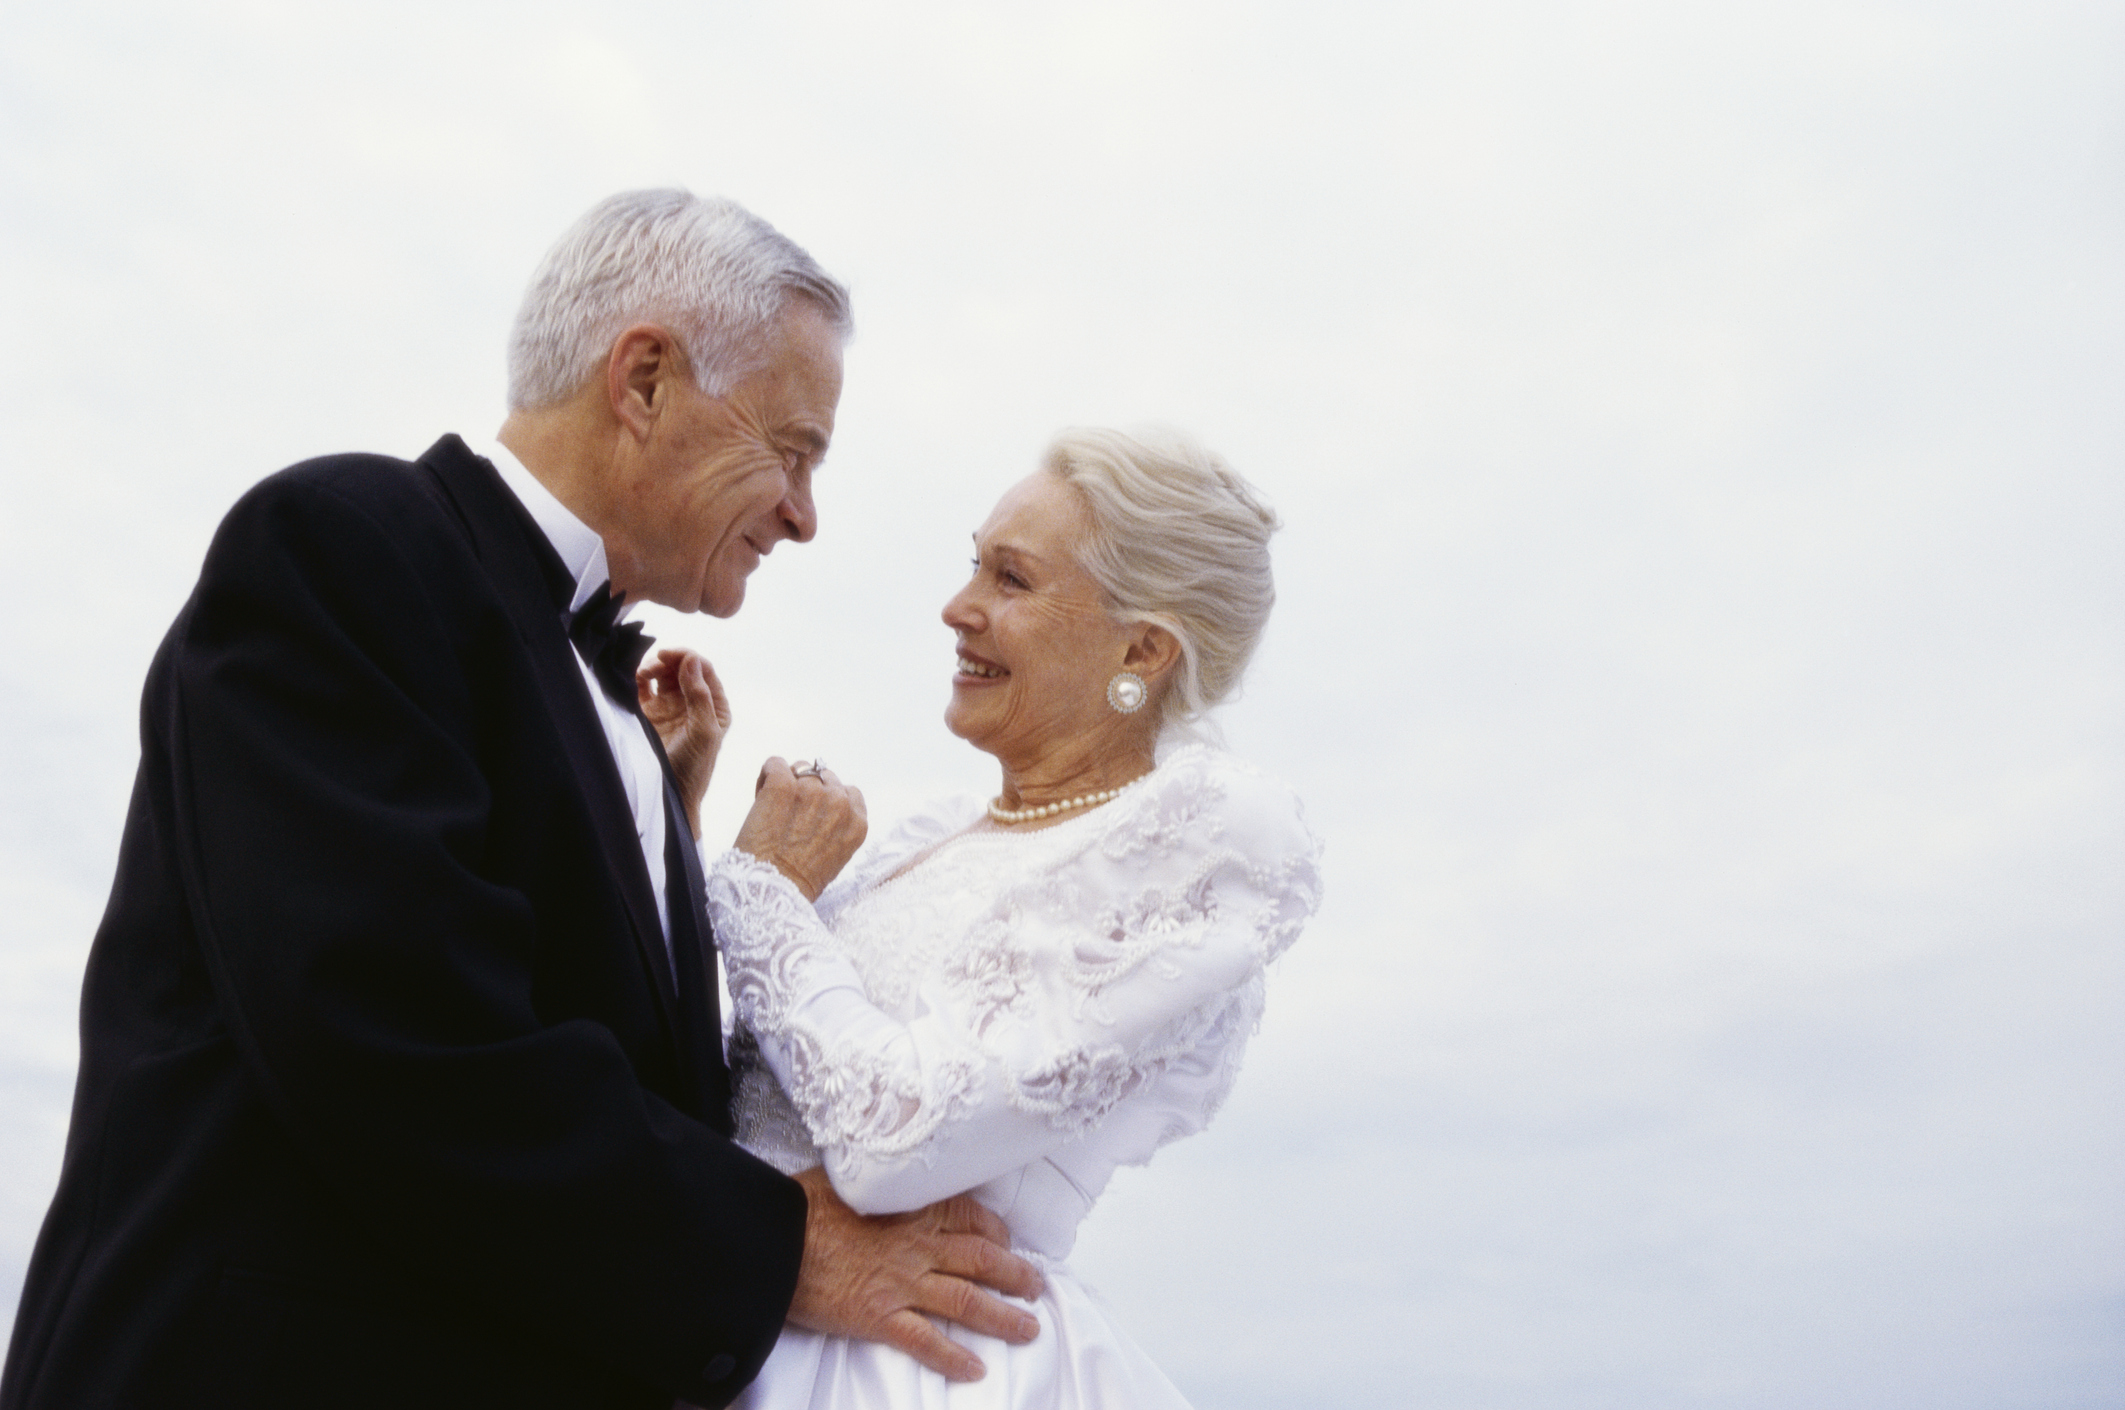 A newlywed senior couple on the beach in their wedding outfits smiling lovingly at each as they dance.